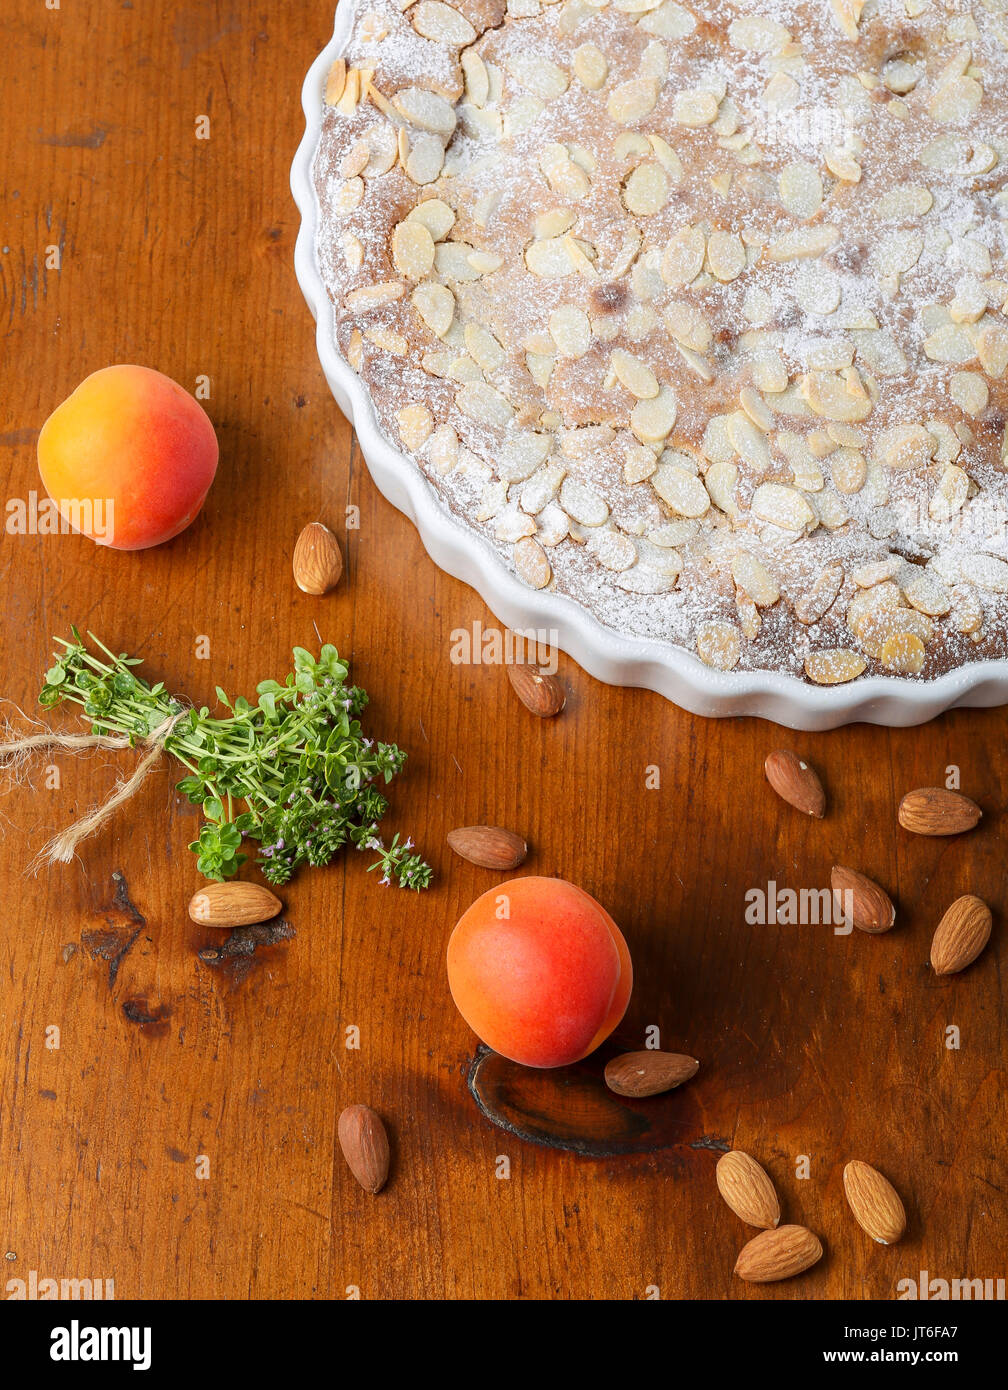 Crustless apricot frangipane tart with almonds and aromatic lemon thyme on rustic brown pine table - Stock Image